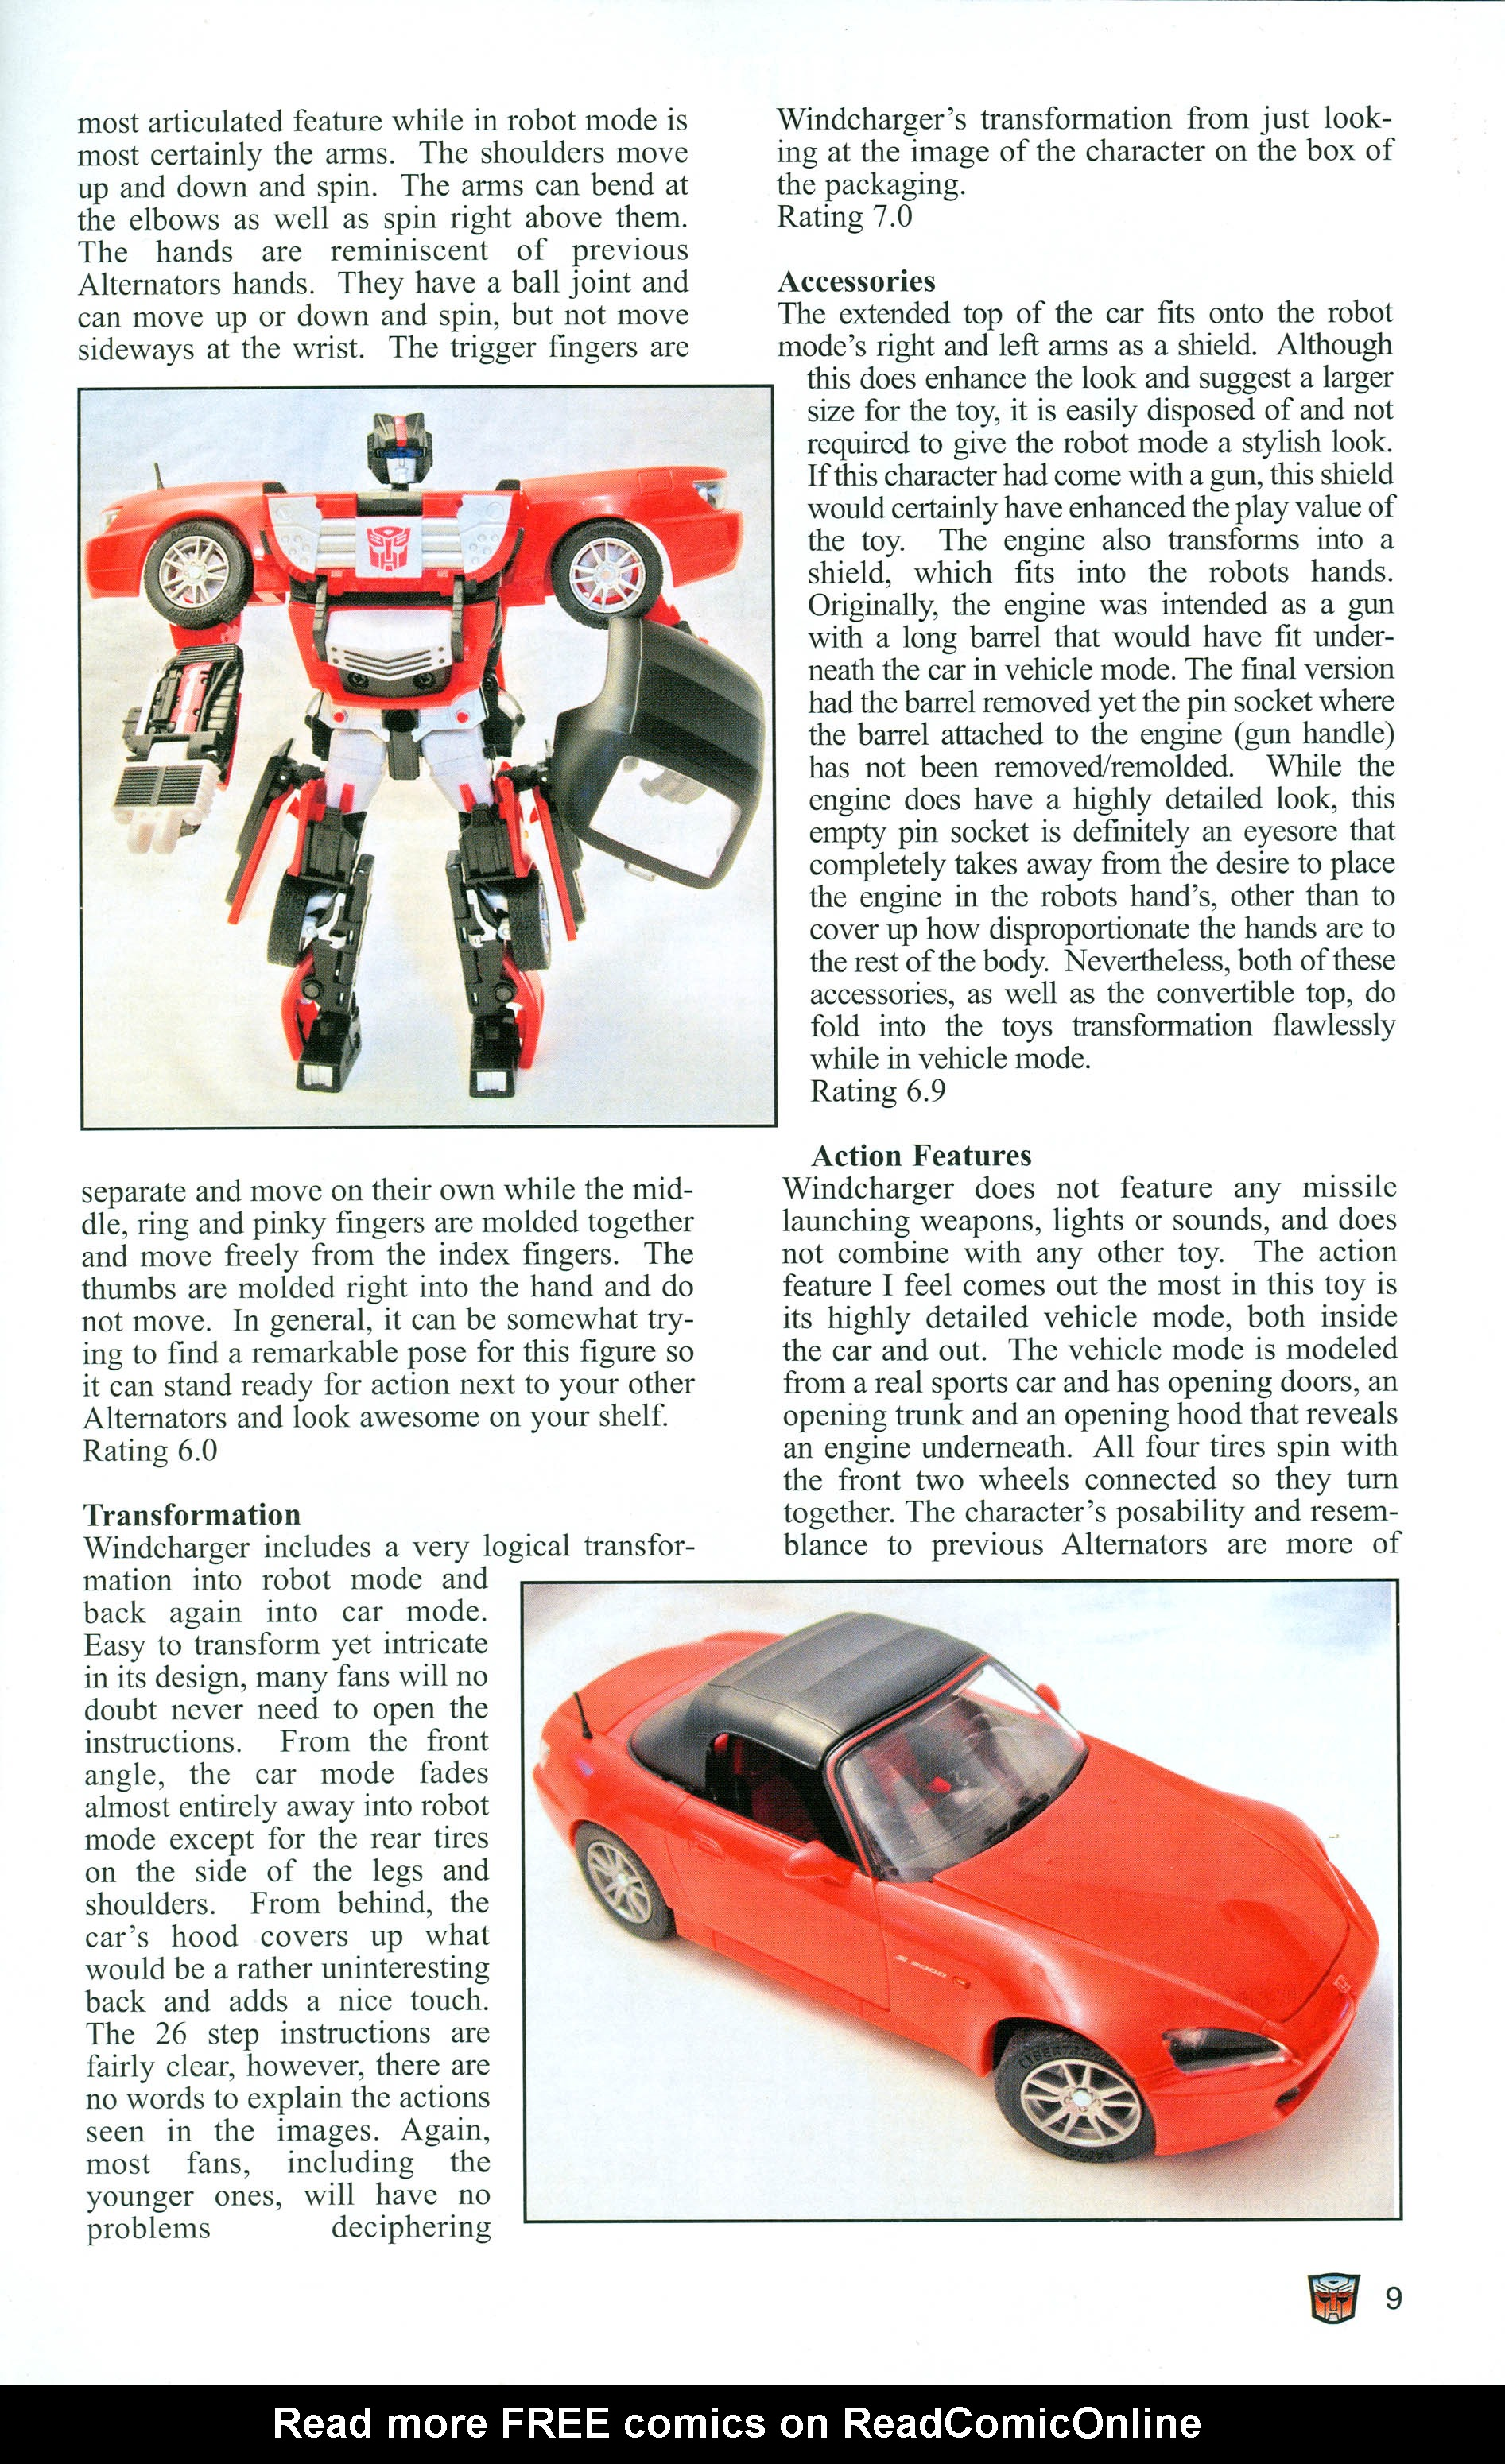 Read online Transformers: Collectors' Club comic -  Issue #1 - 9